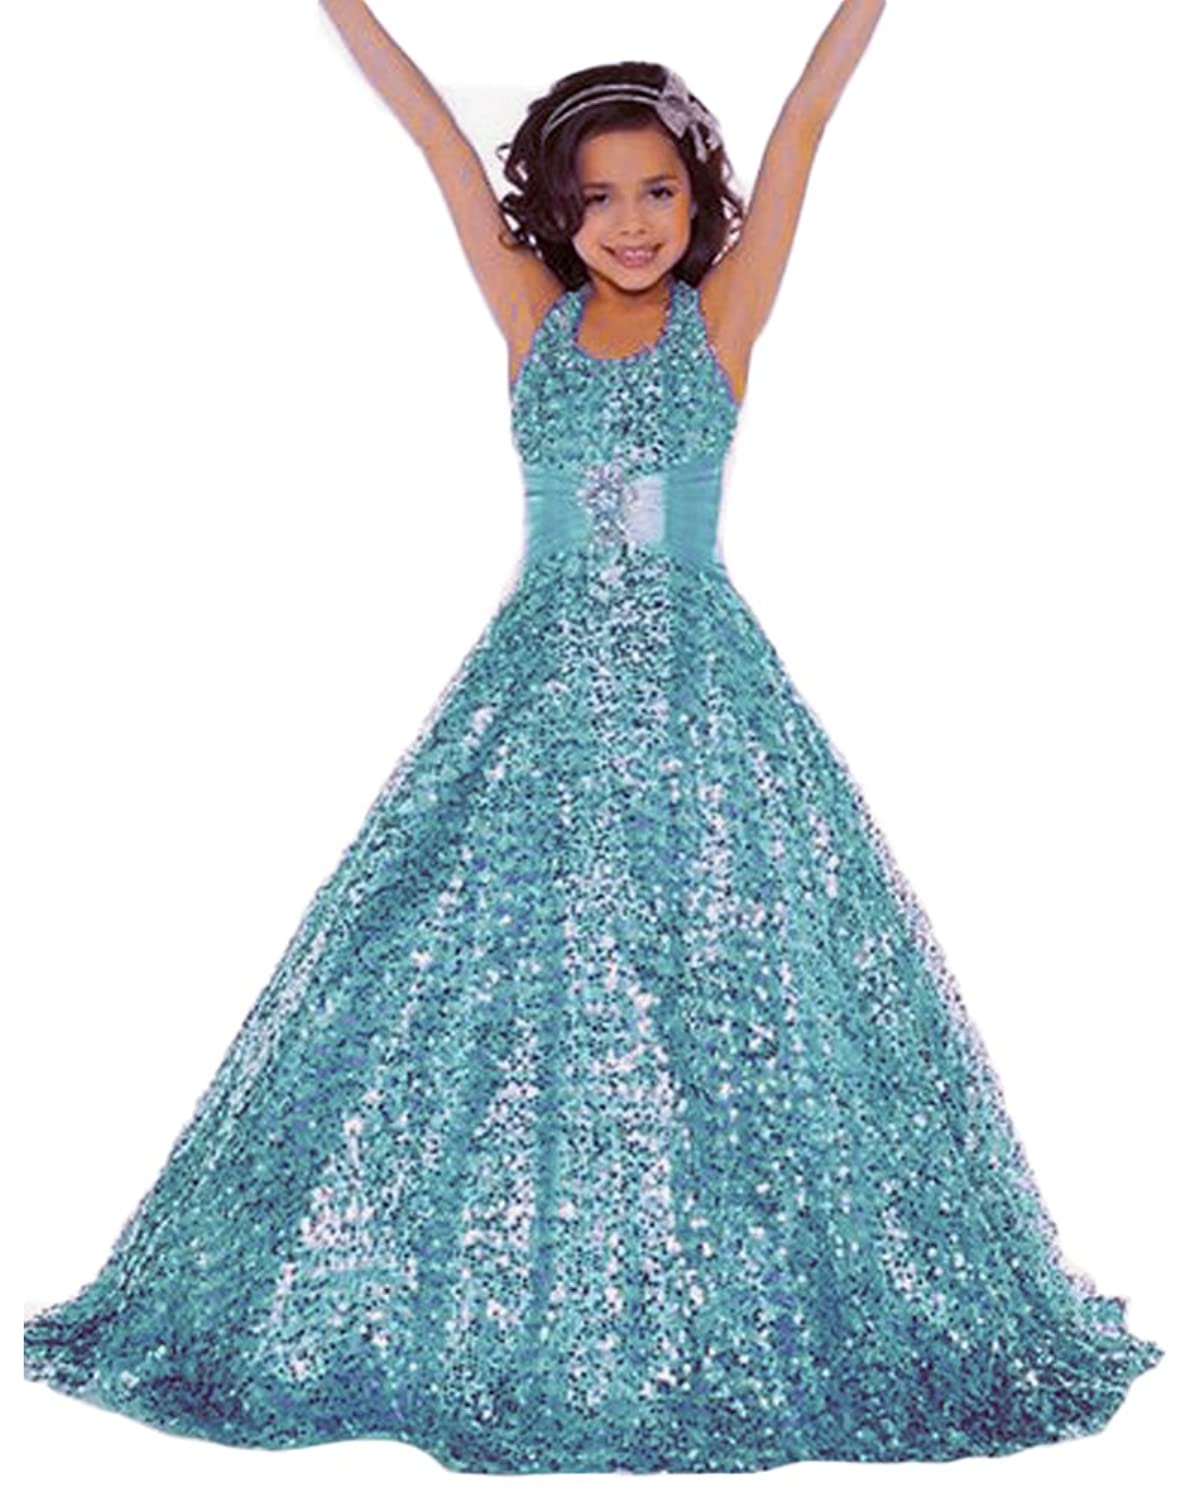 Amazon lisa golds sequins pageant dress long flower girl amazon lisa golds sequins pageant dress long flower girl bridesmaid dress ls79 clothing ombrellifo Image collections